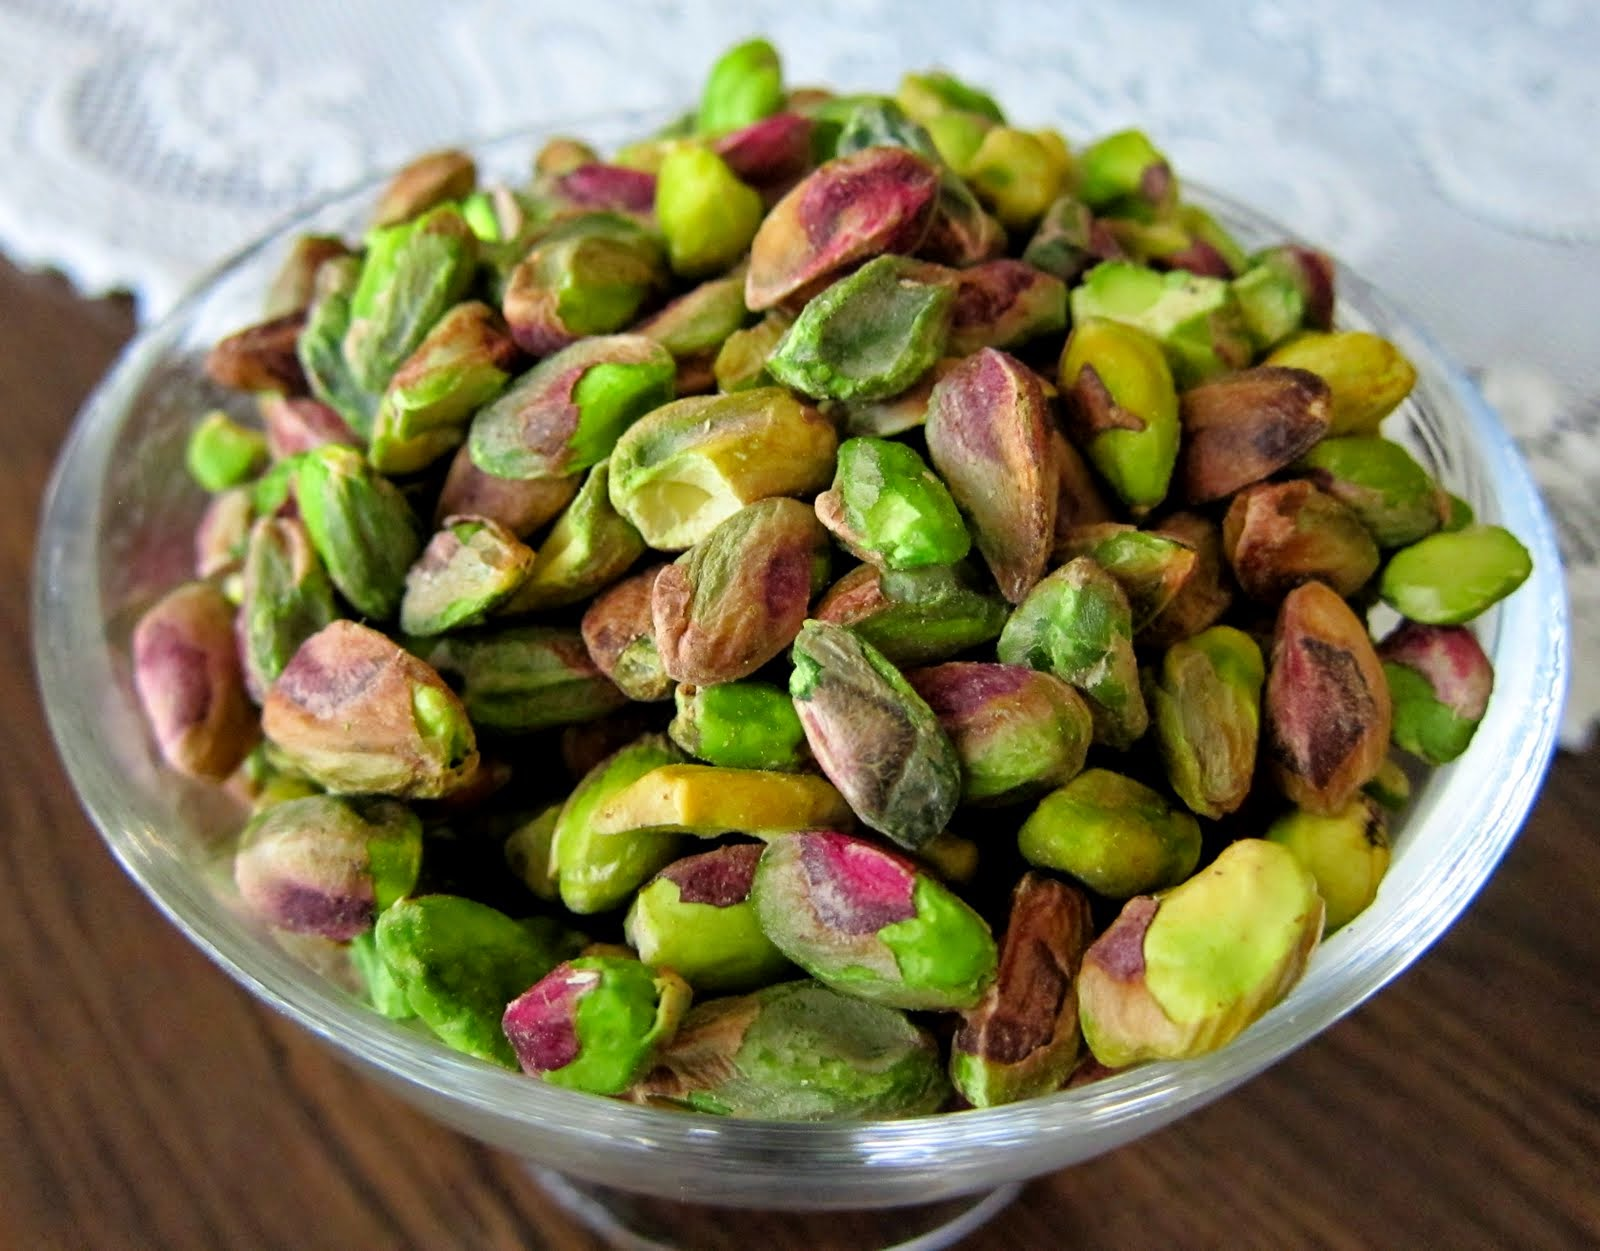 What are the health benefits of pistachios?